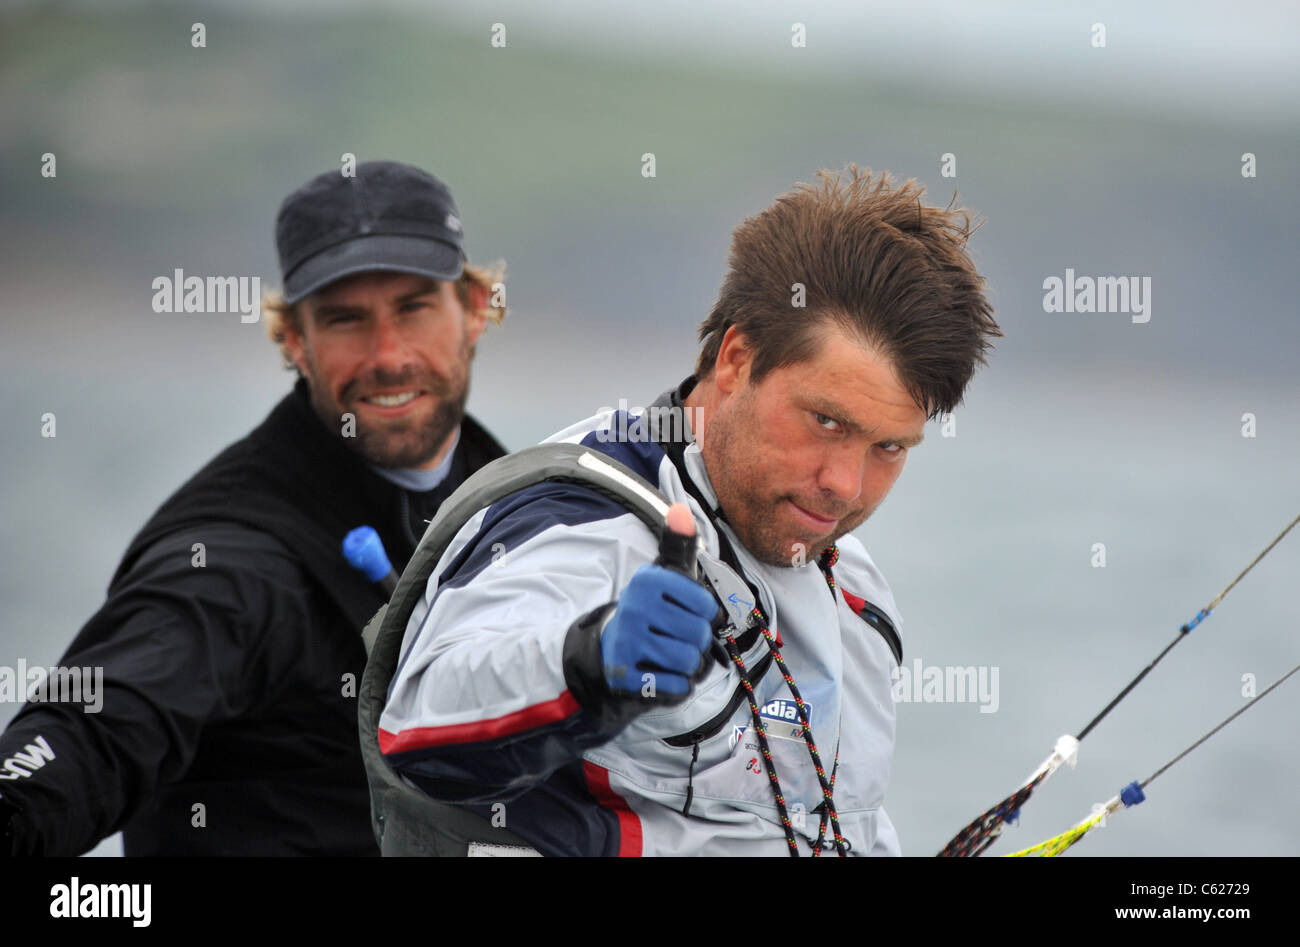 UK, Olympic Test Event, Iain Percy and Andrew Simpson - Stock Image